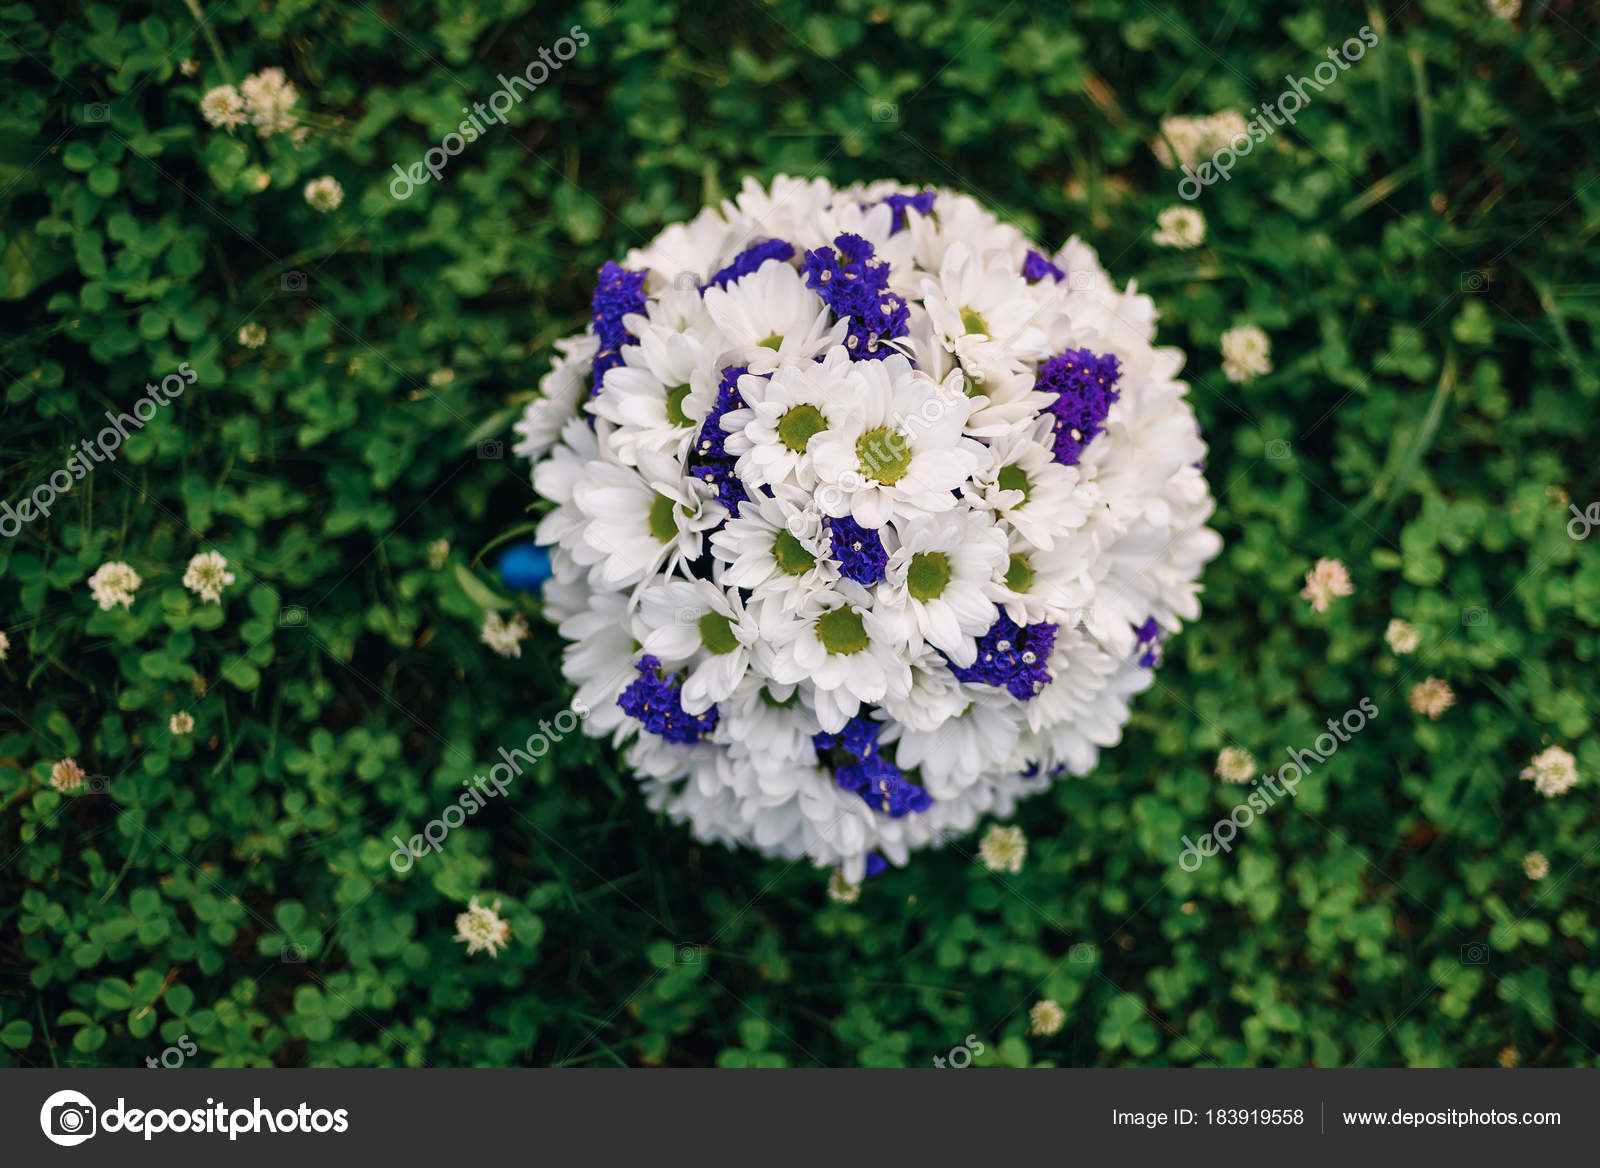 Wedding Bouquet Of White Daisies And Blue Flowers Stock Photo